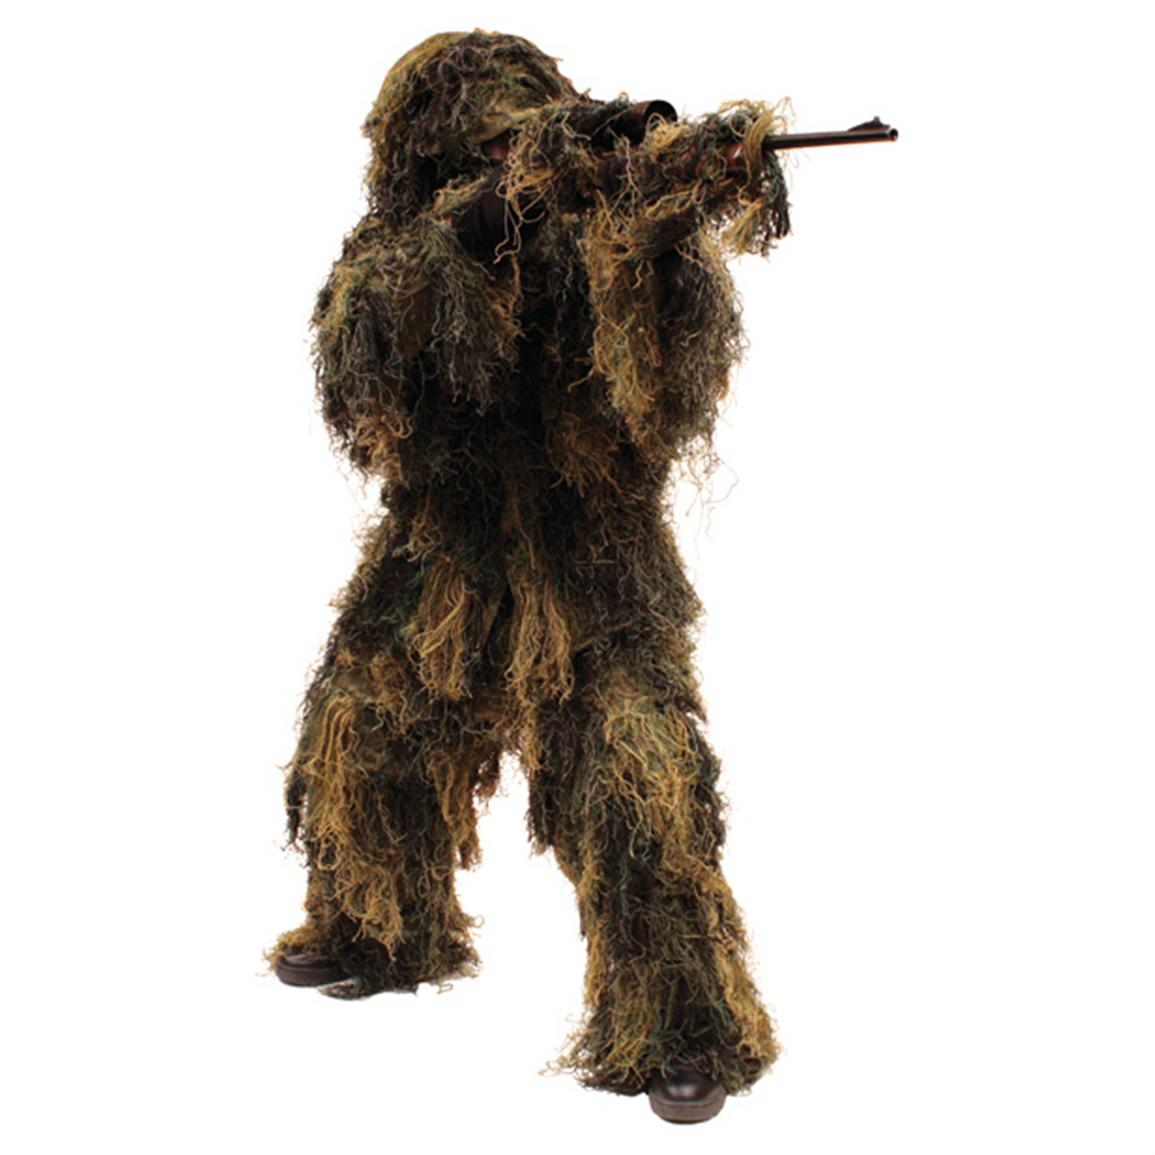 Red Rock Outdoor Gear™ 5-Pc. Woodland Camo Ghillie Suit